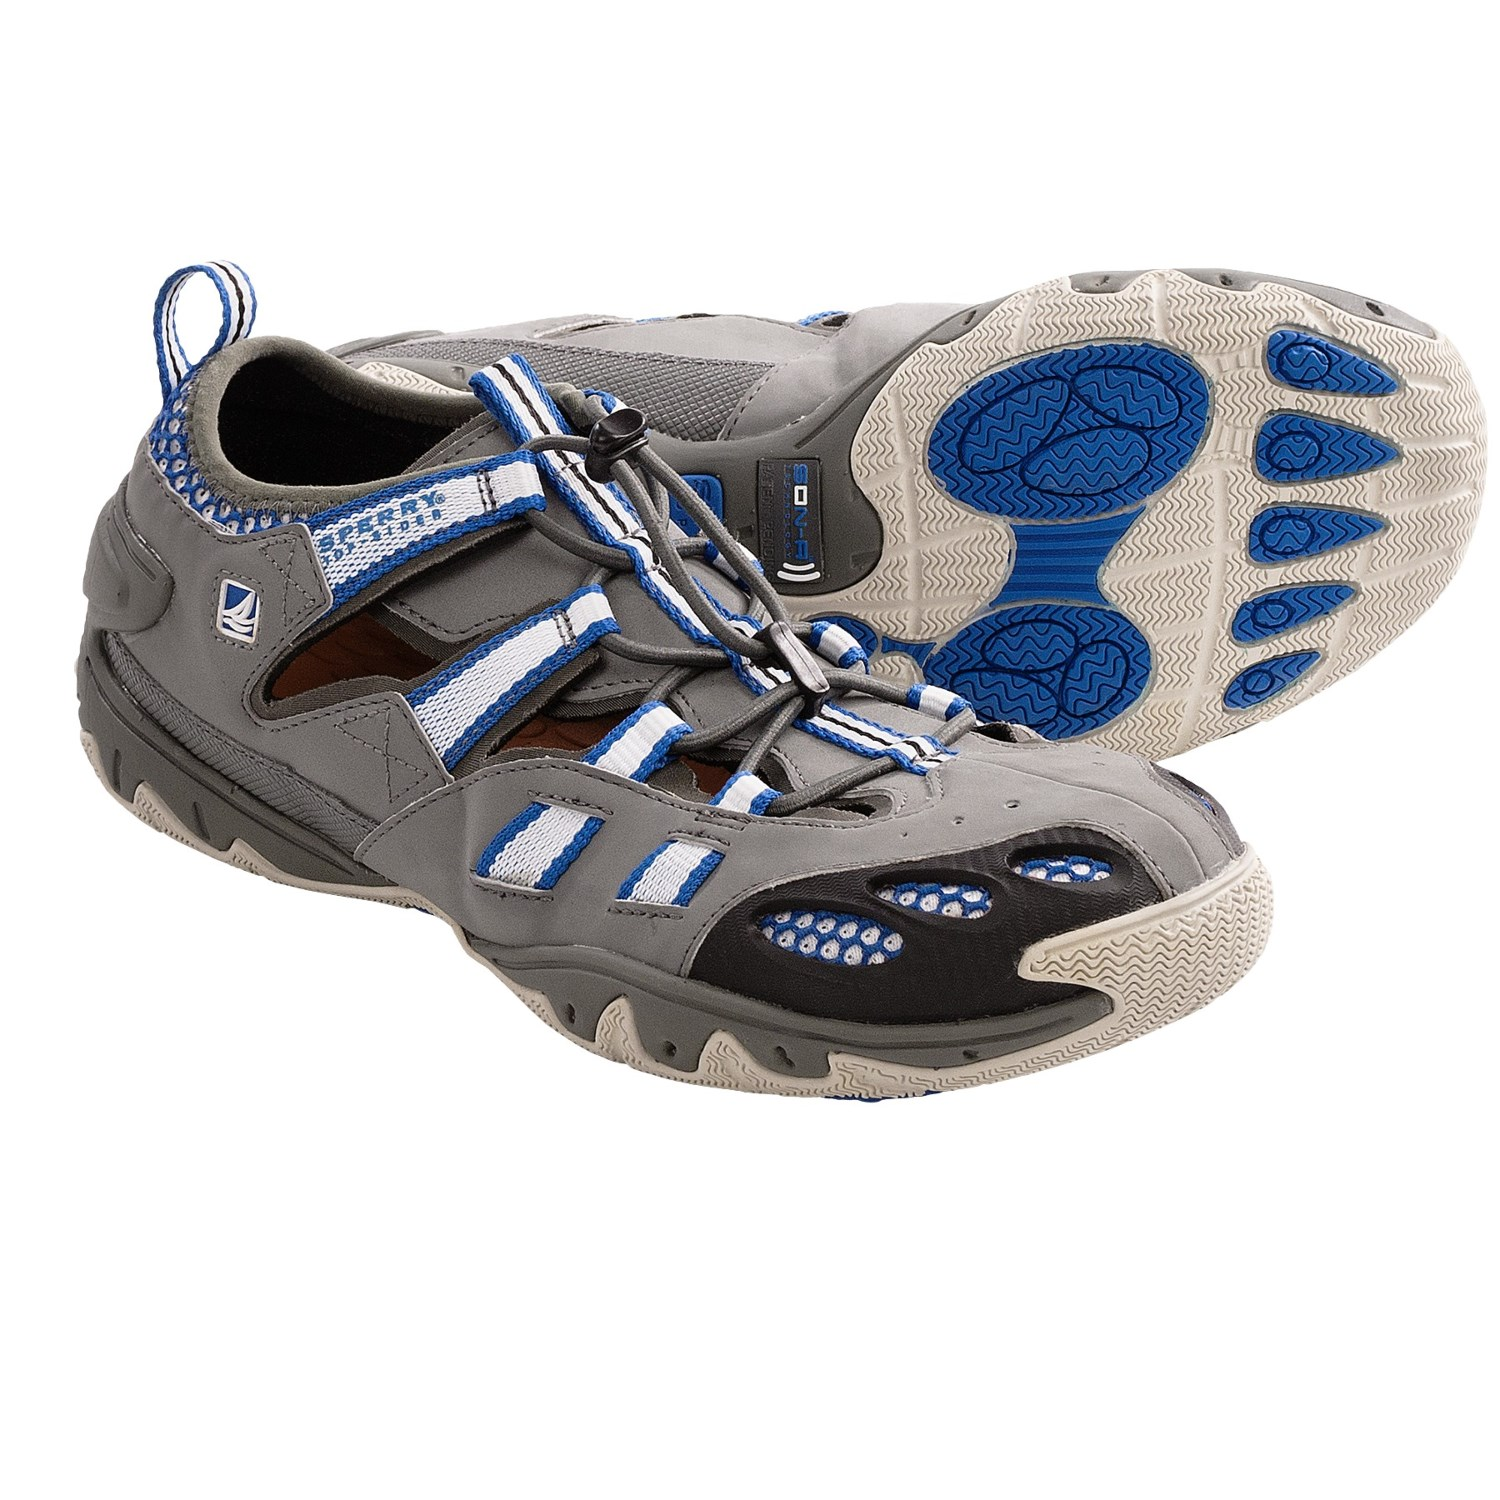 Sperry Water Shoes 106